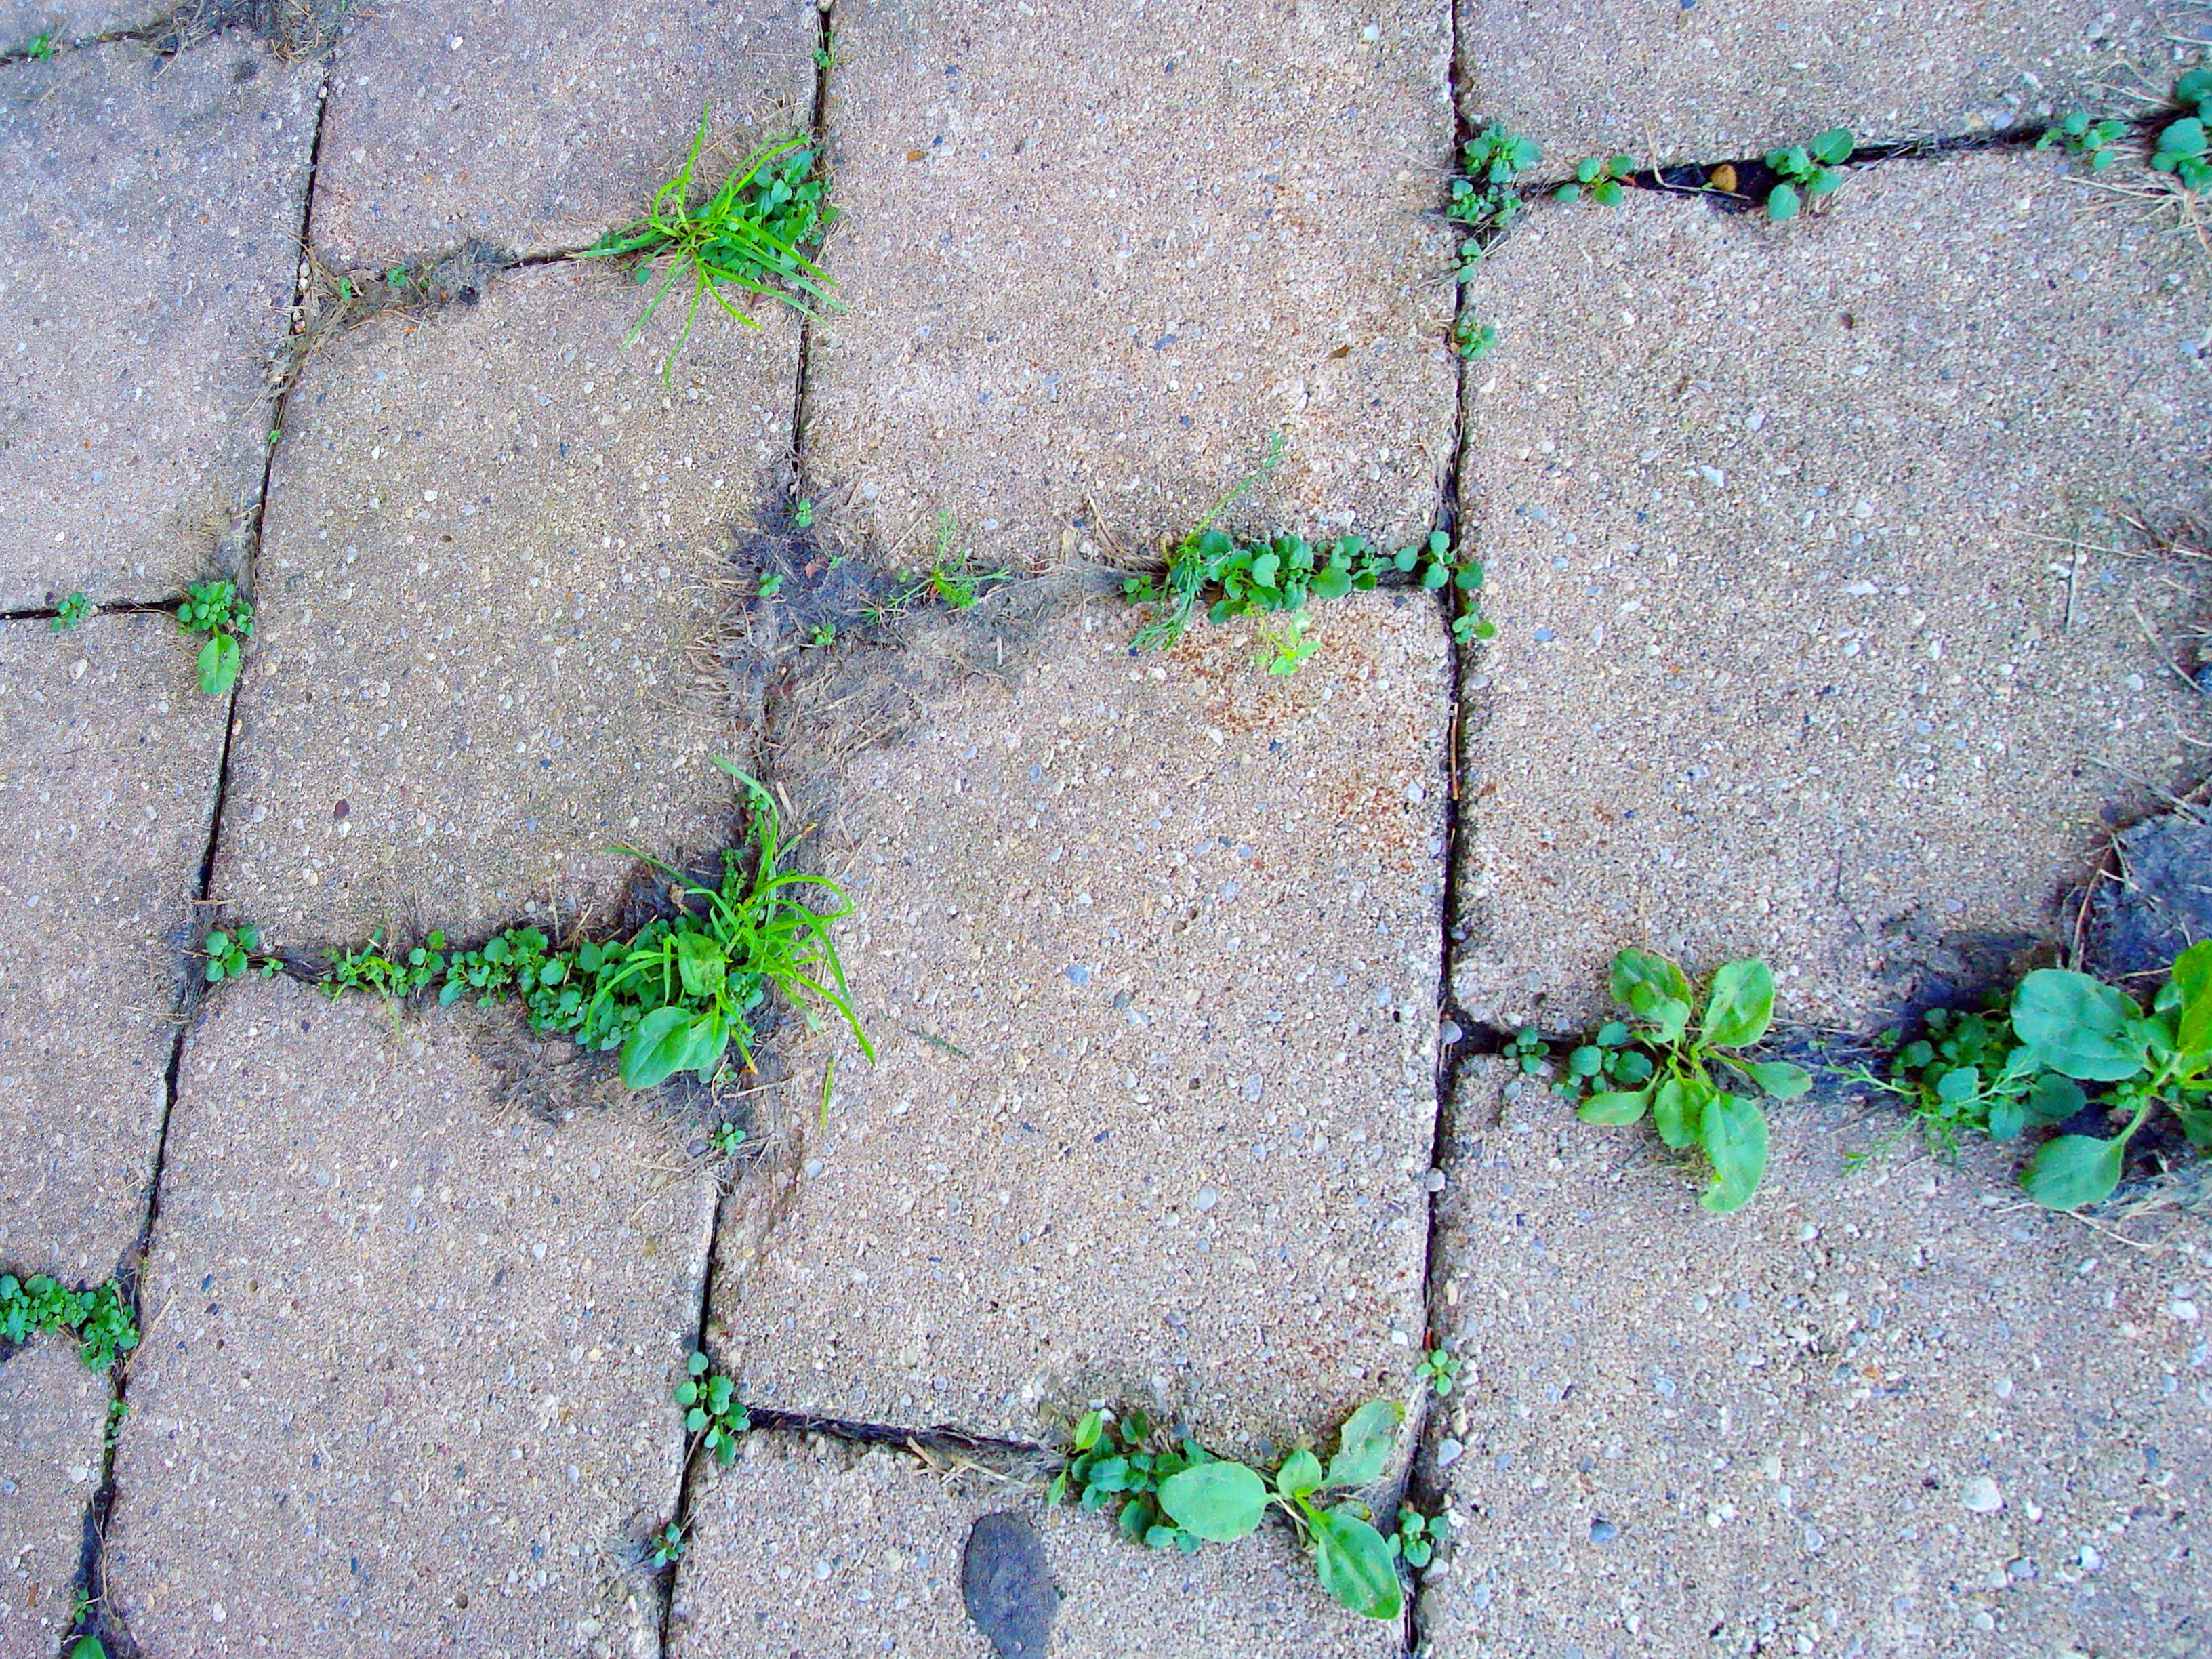 How to plant ground cover between pavers - How To Keep Weeds From Growing Between Pavers